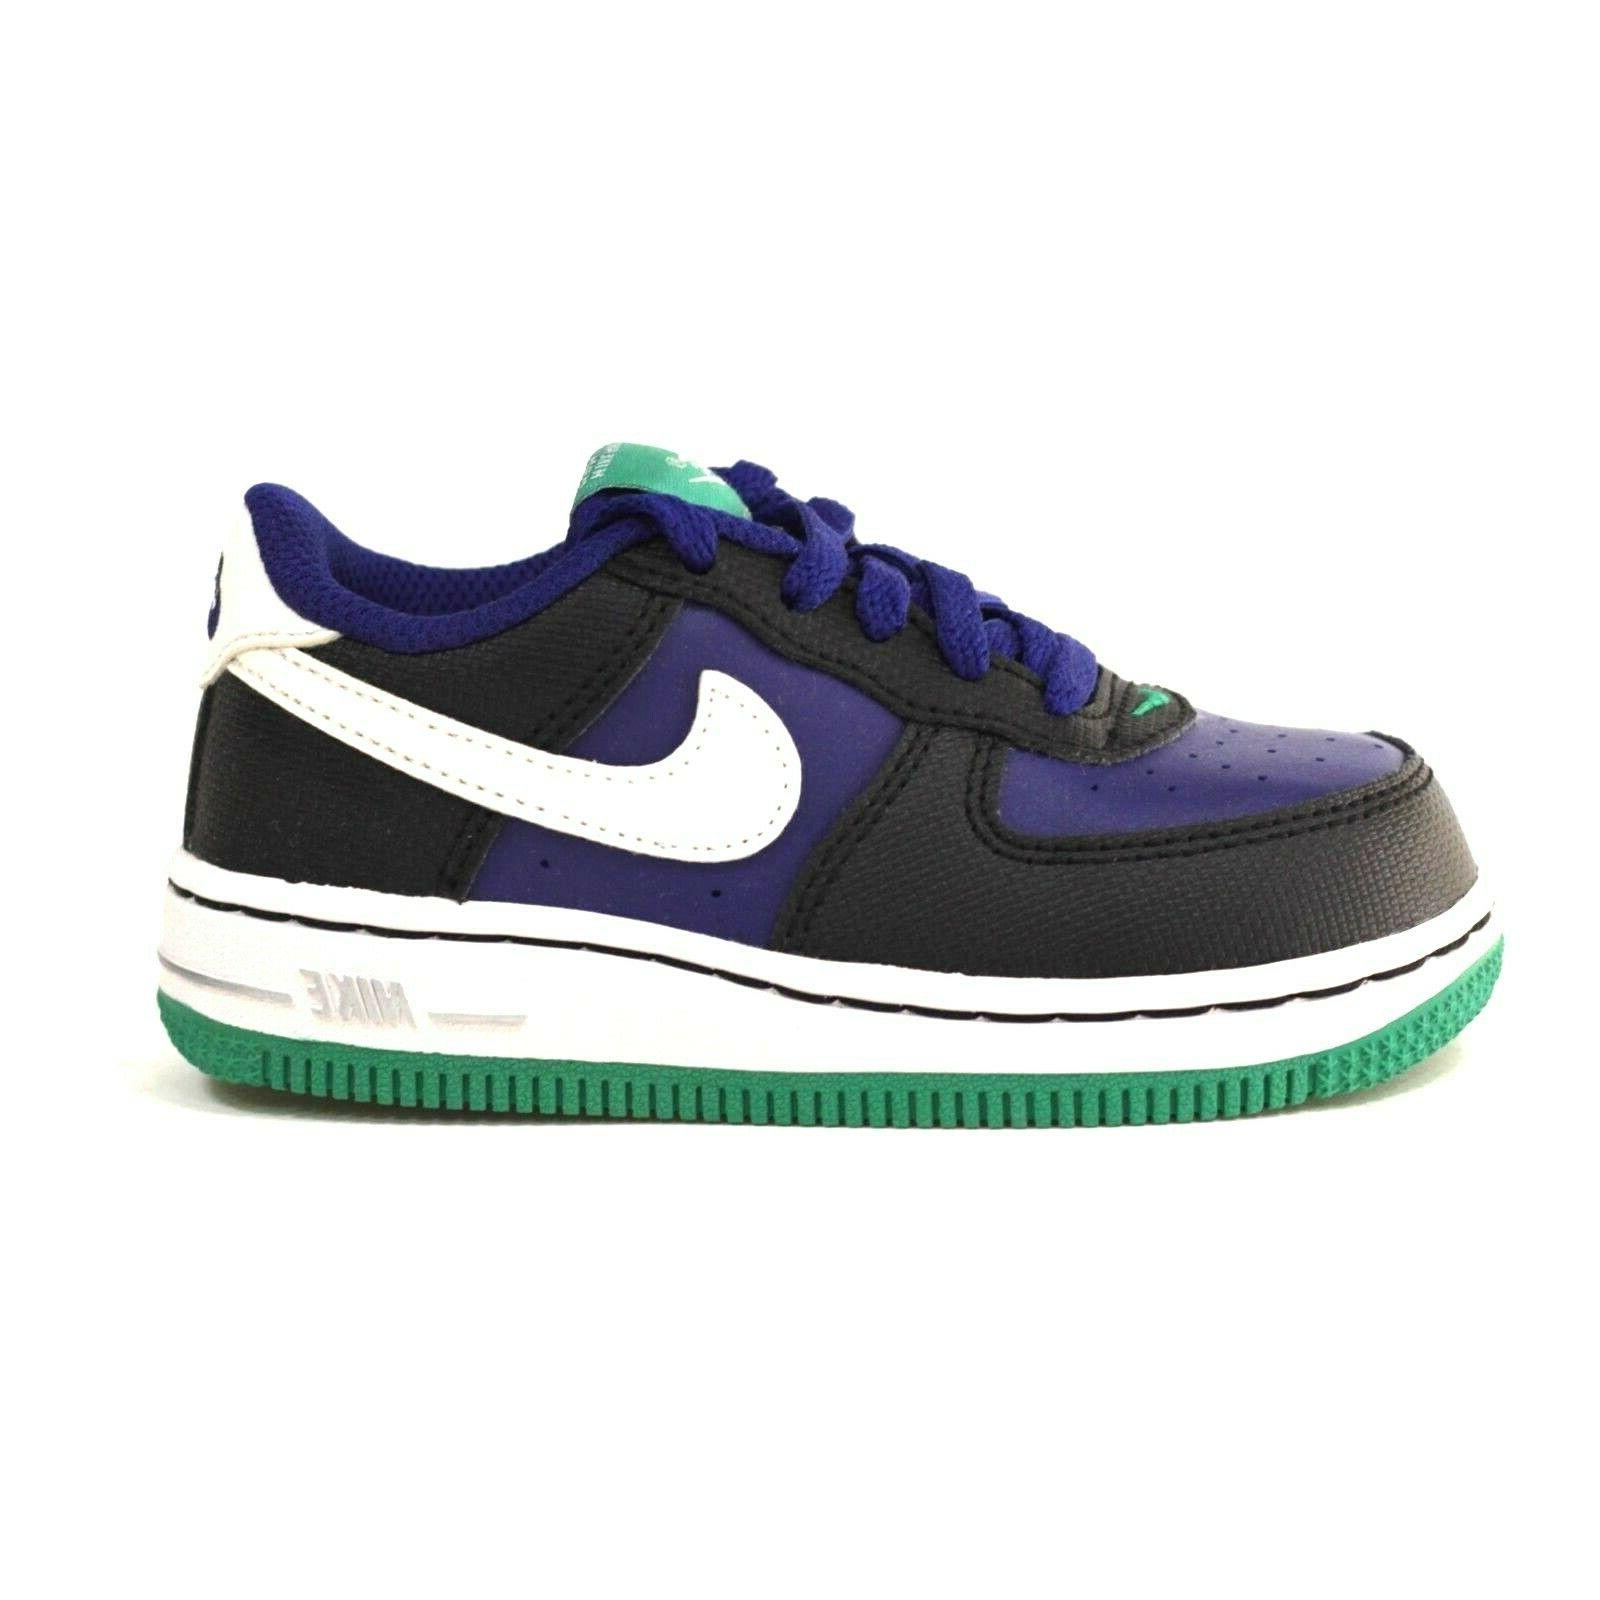 toddler s af1 td shoes new authentic